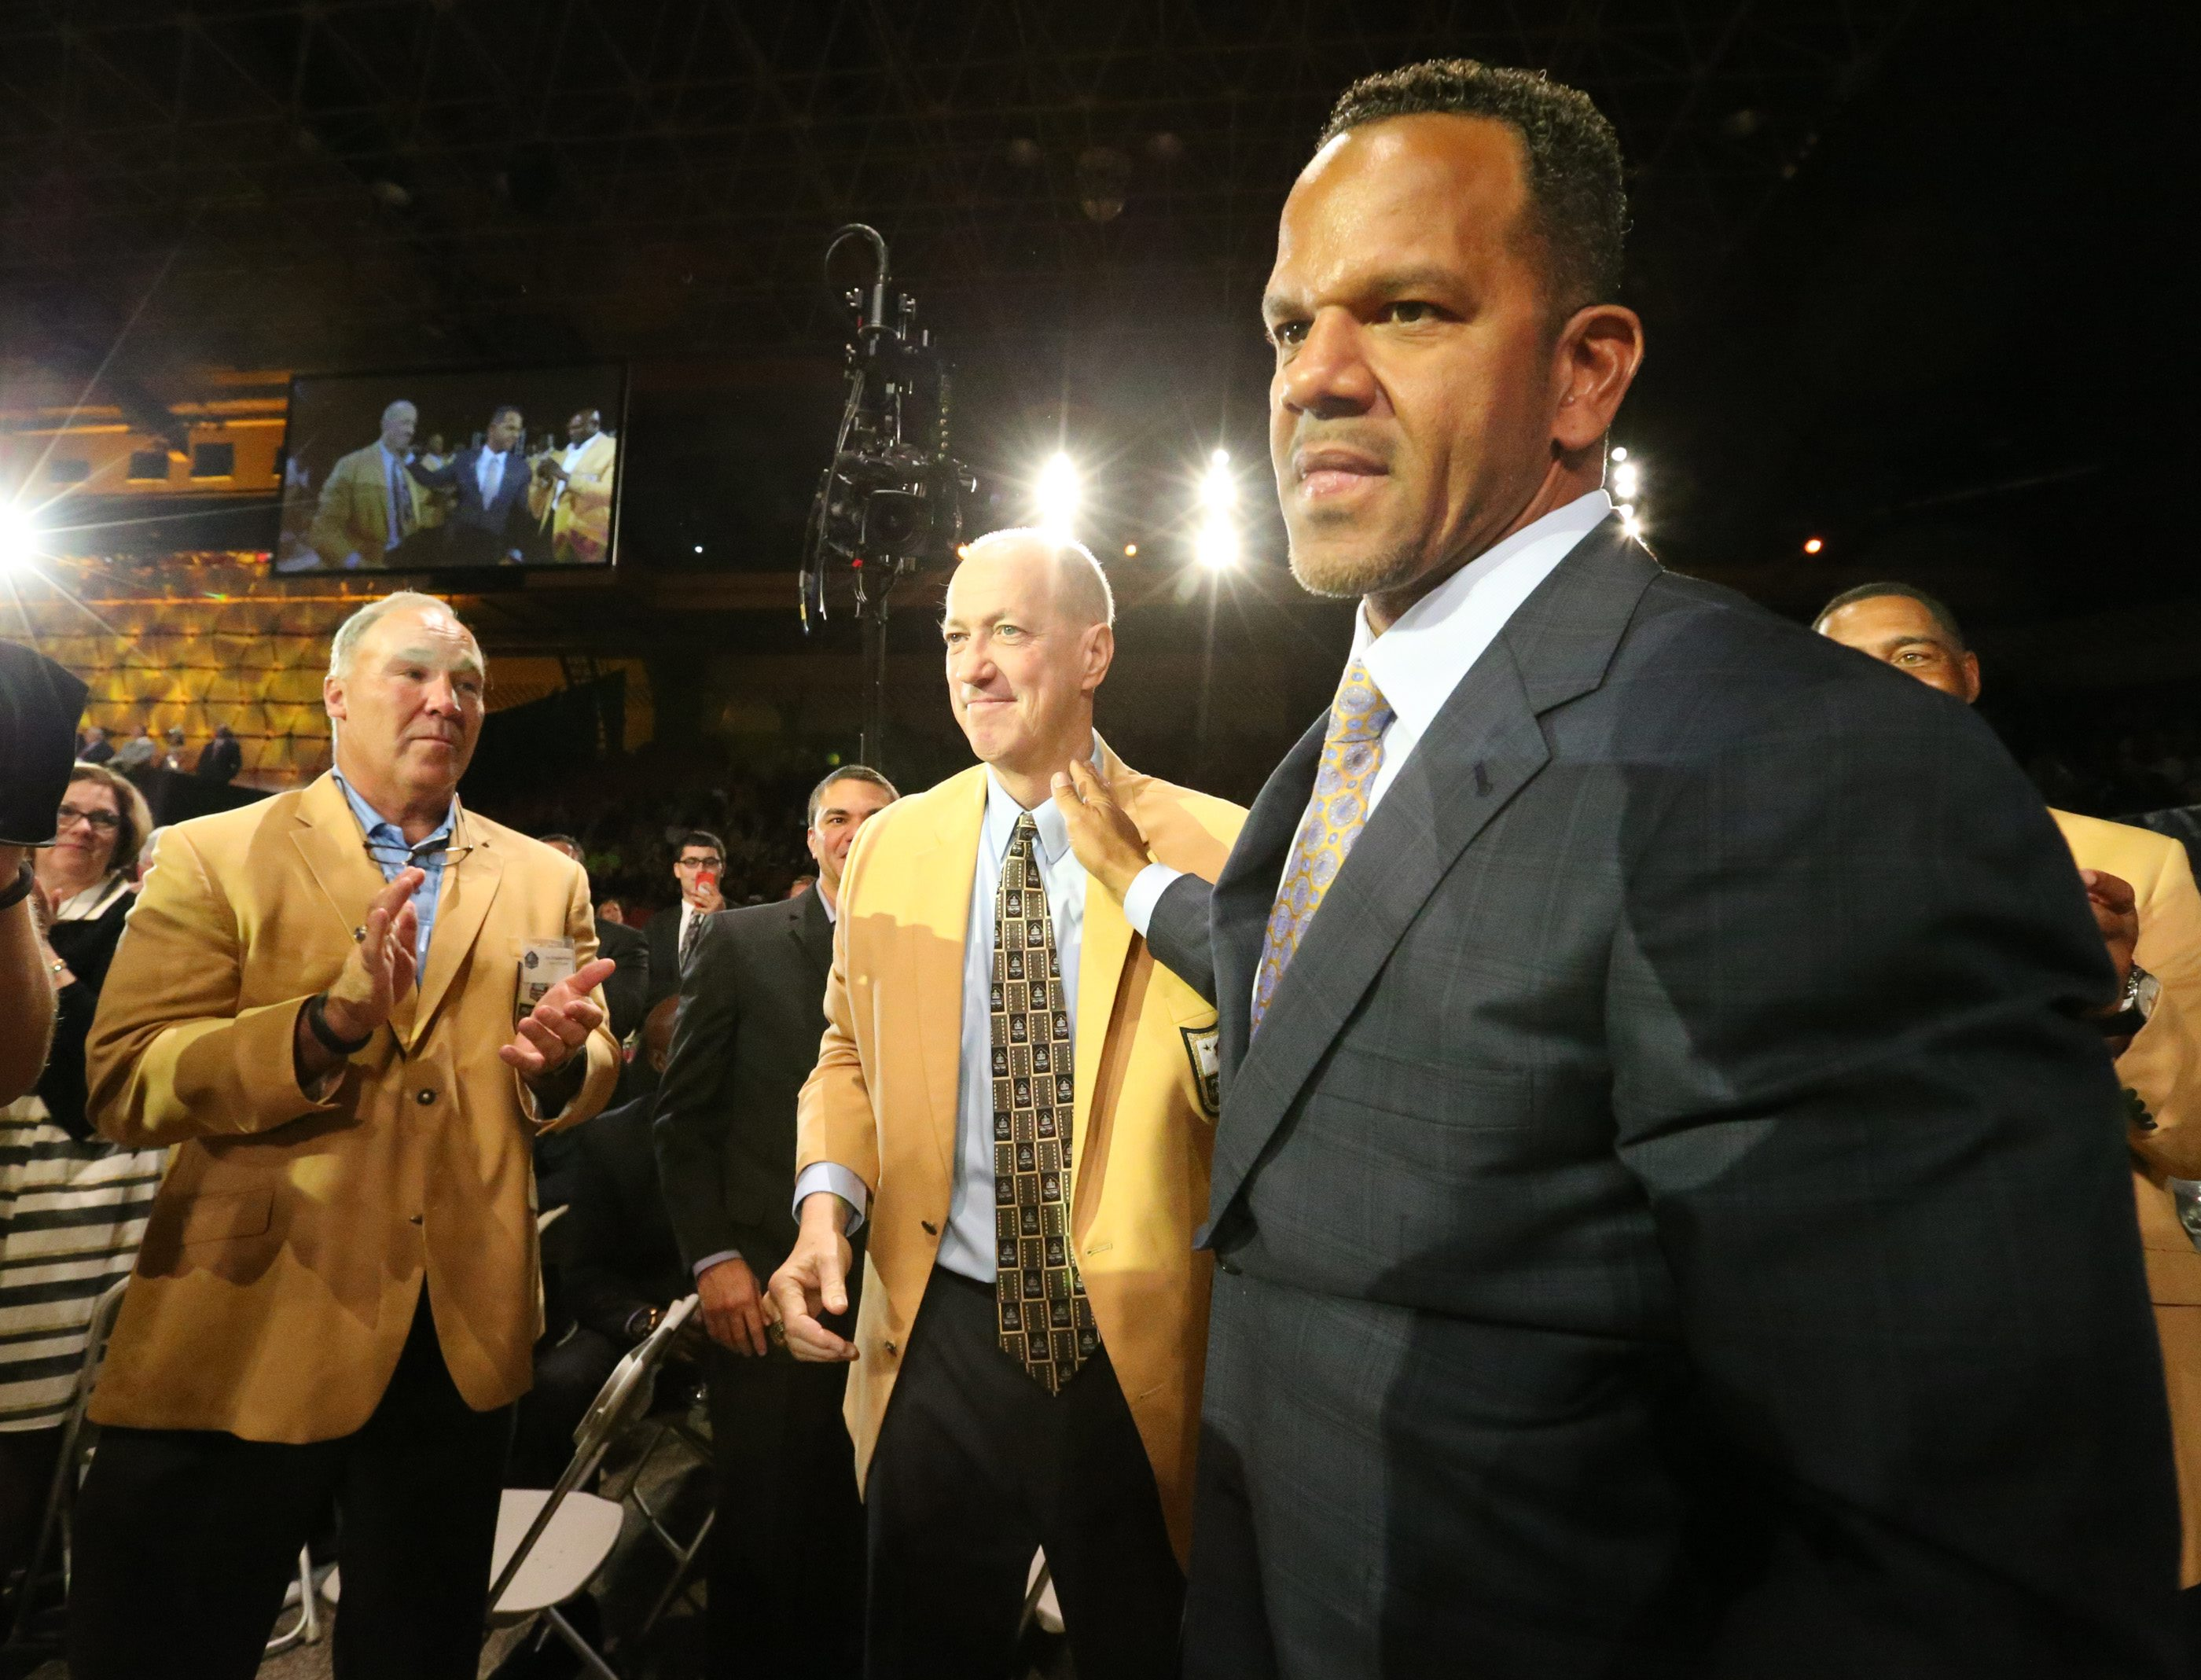 Buffalo Bills Hall of Famers Joe Delamielleure and Jim Kelly applaud as Andre Reed heads to the stage to receive his gold jacket.  (James P. McCoy/Buffalo News)